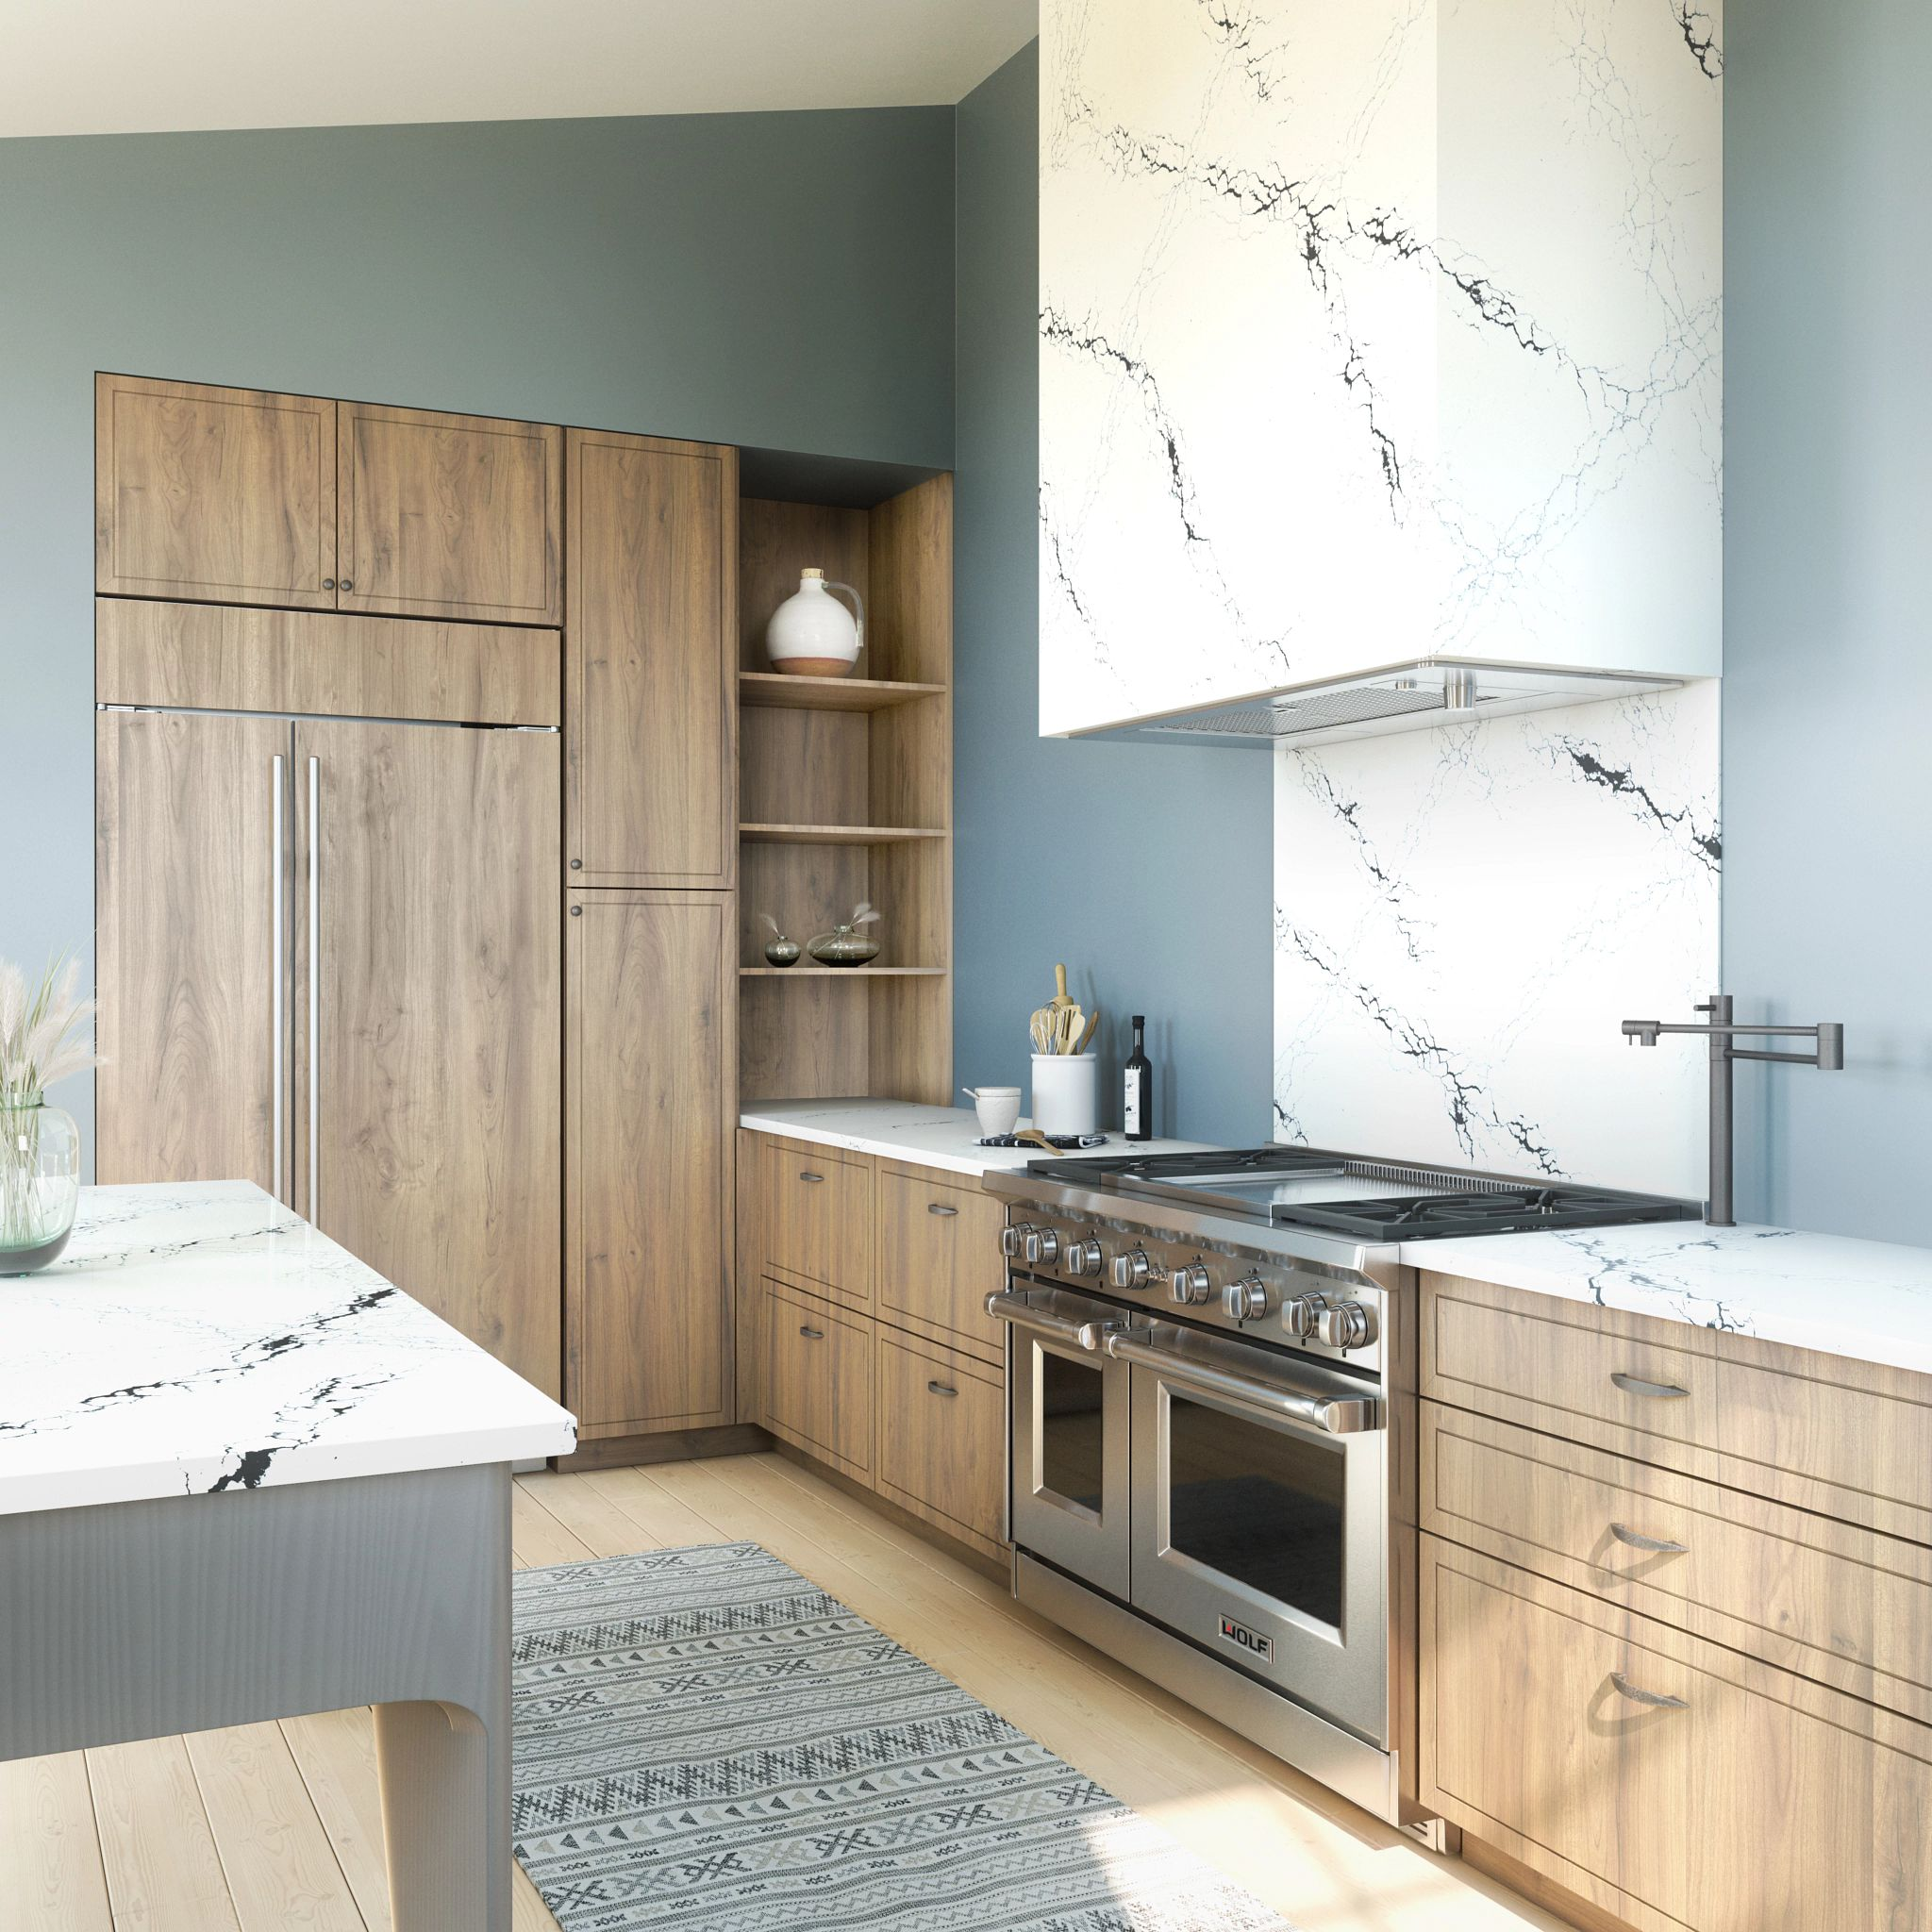 A kitchen with wooden cabinets  Description automatically generated with medium confidence